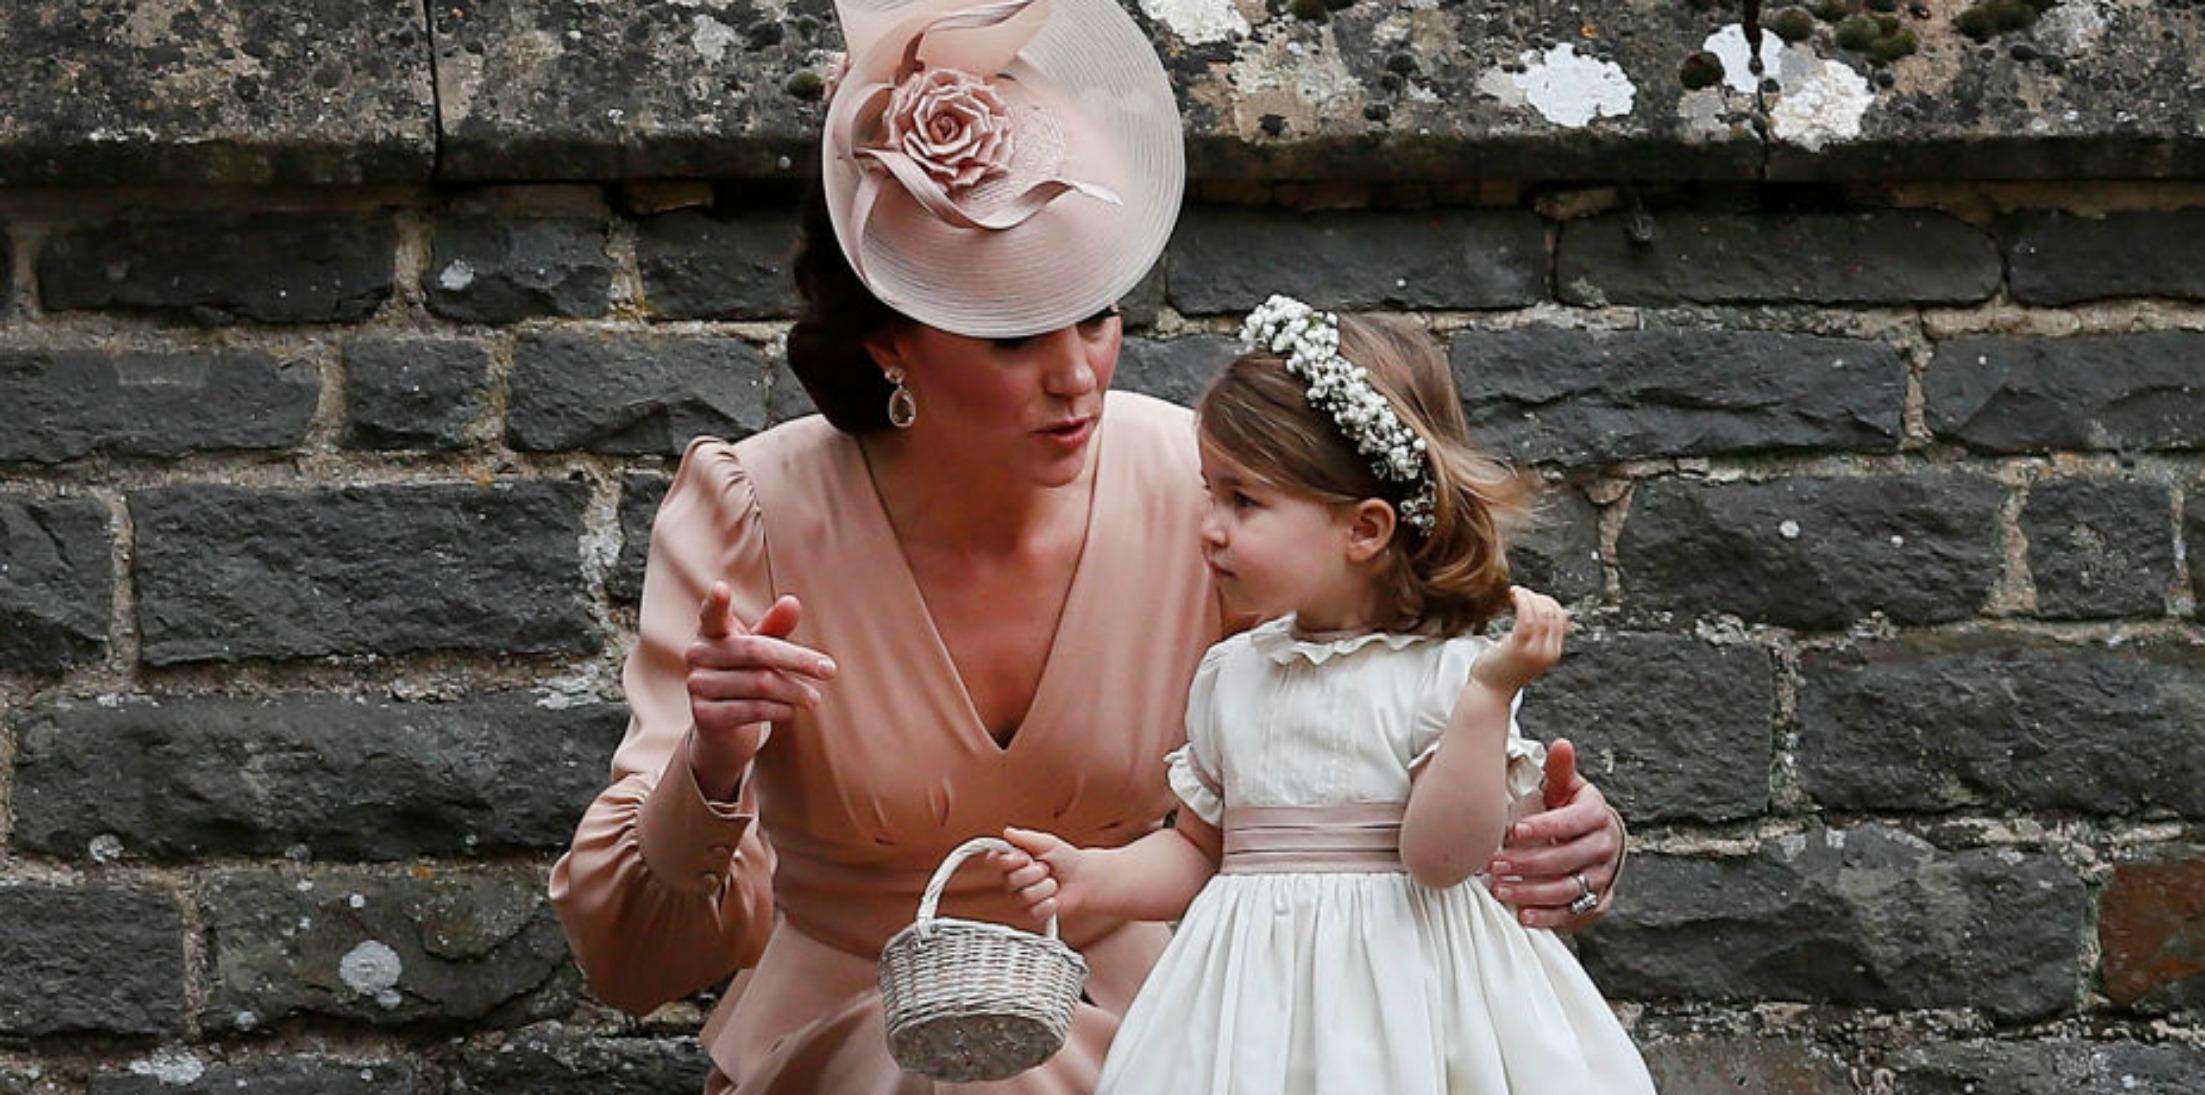 Prince george princess charlotte pippa middleton wedding photos h